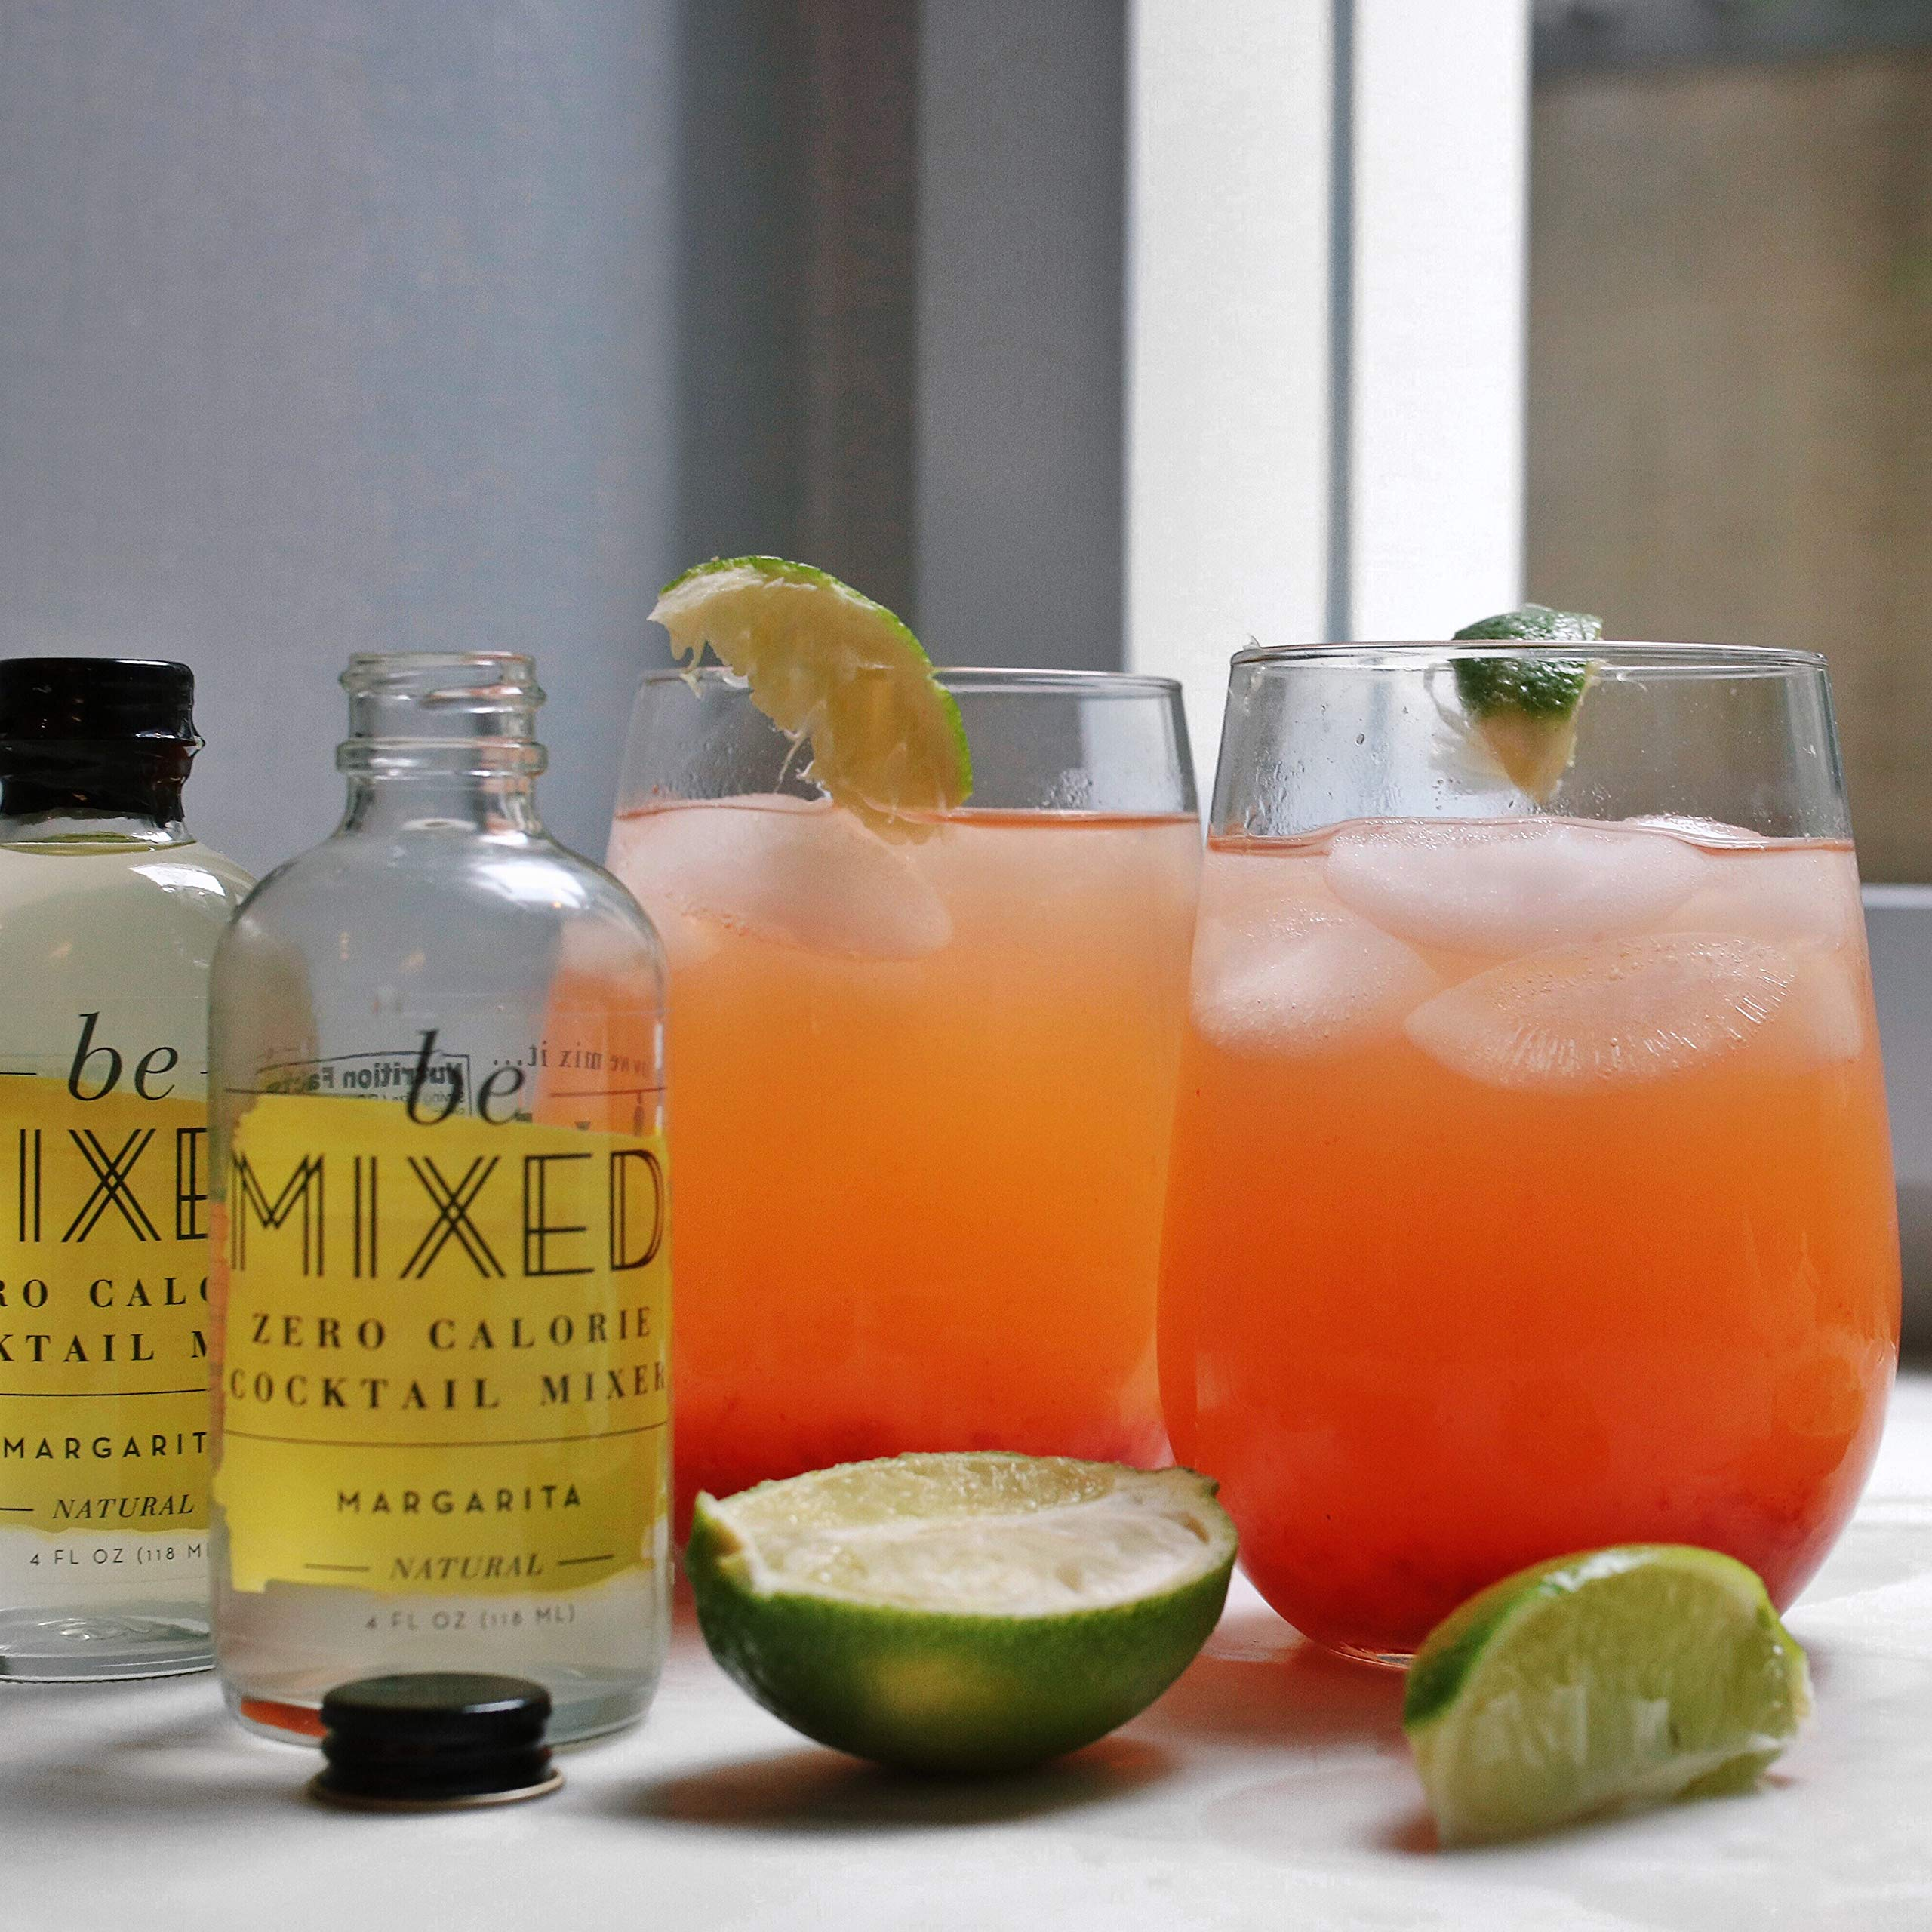 Zero Calorie Margarita Cocktail Mixer by Be Mixed | Low Carb, Keto Friendly, Sugar Free and Gluten Free Drink Mix | 4 oz Glass Bottles, 12 Count by Be Mixed (Image #5)